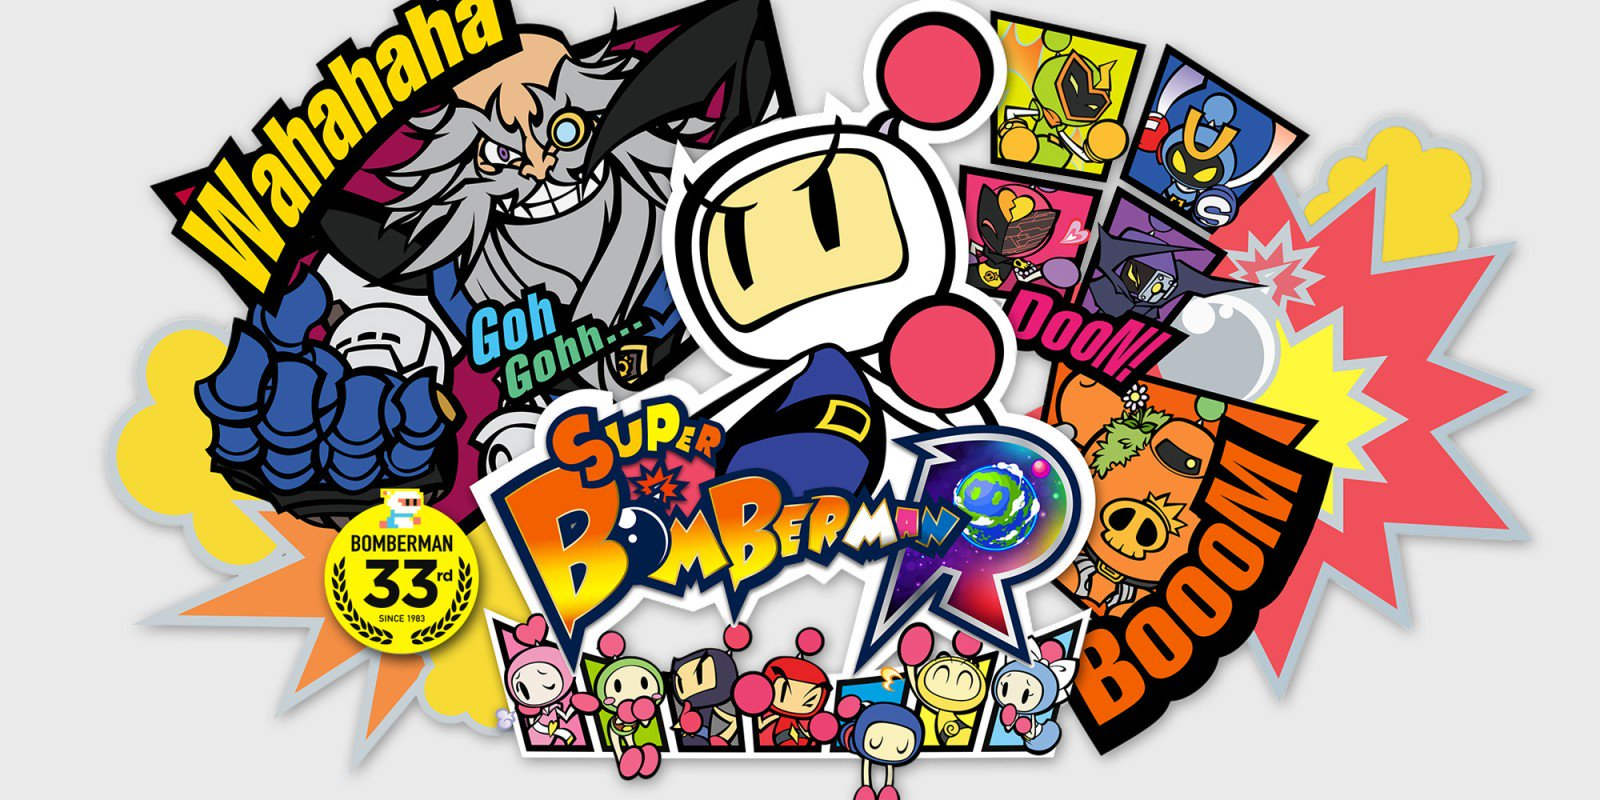 Super Bomberman R é anunciado para PC, PlayStation 4 e Xbox One